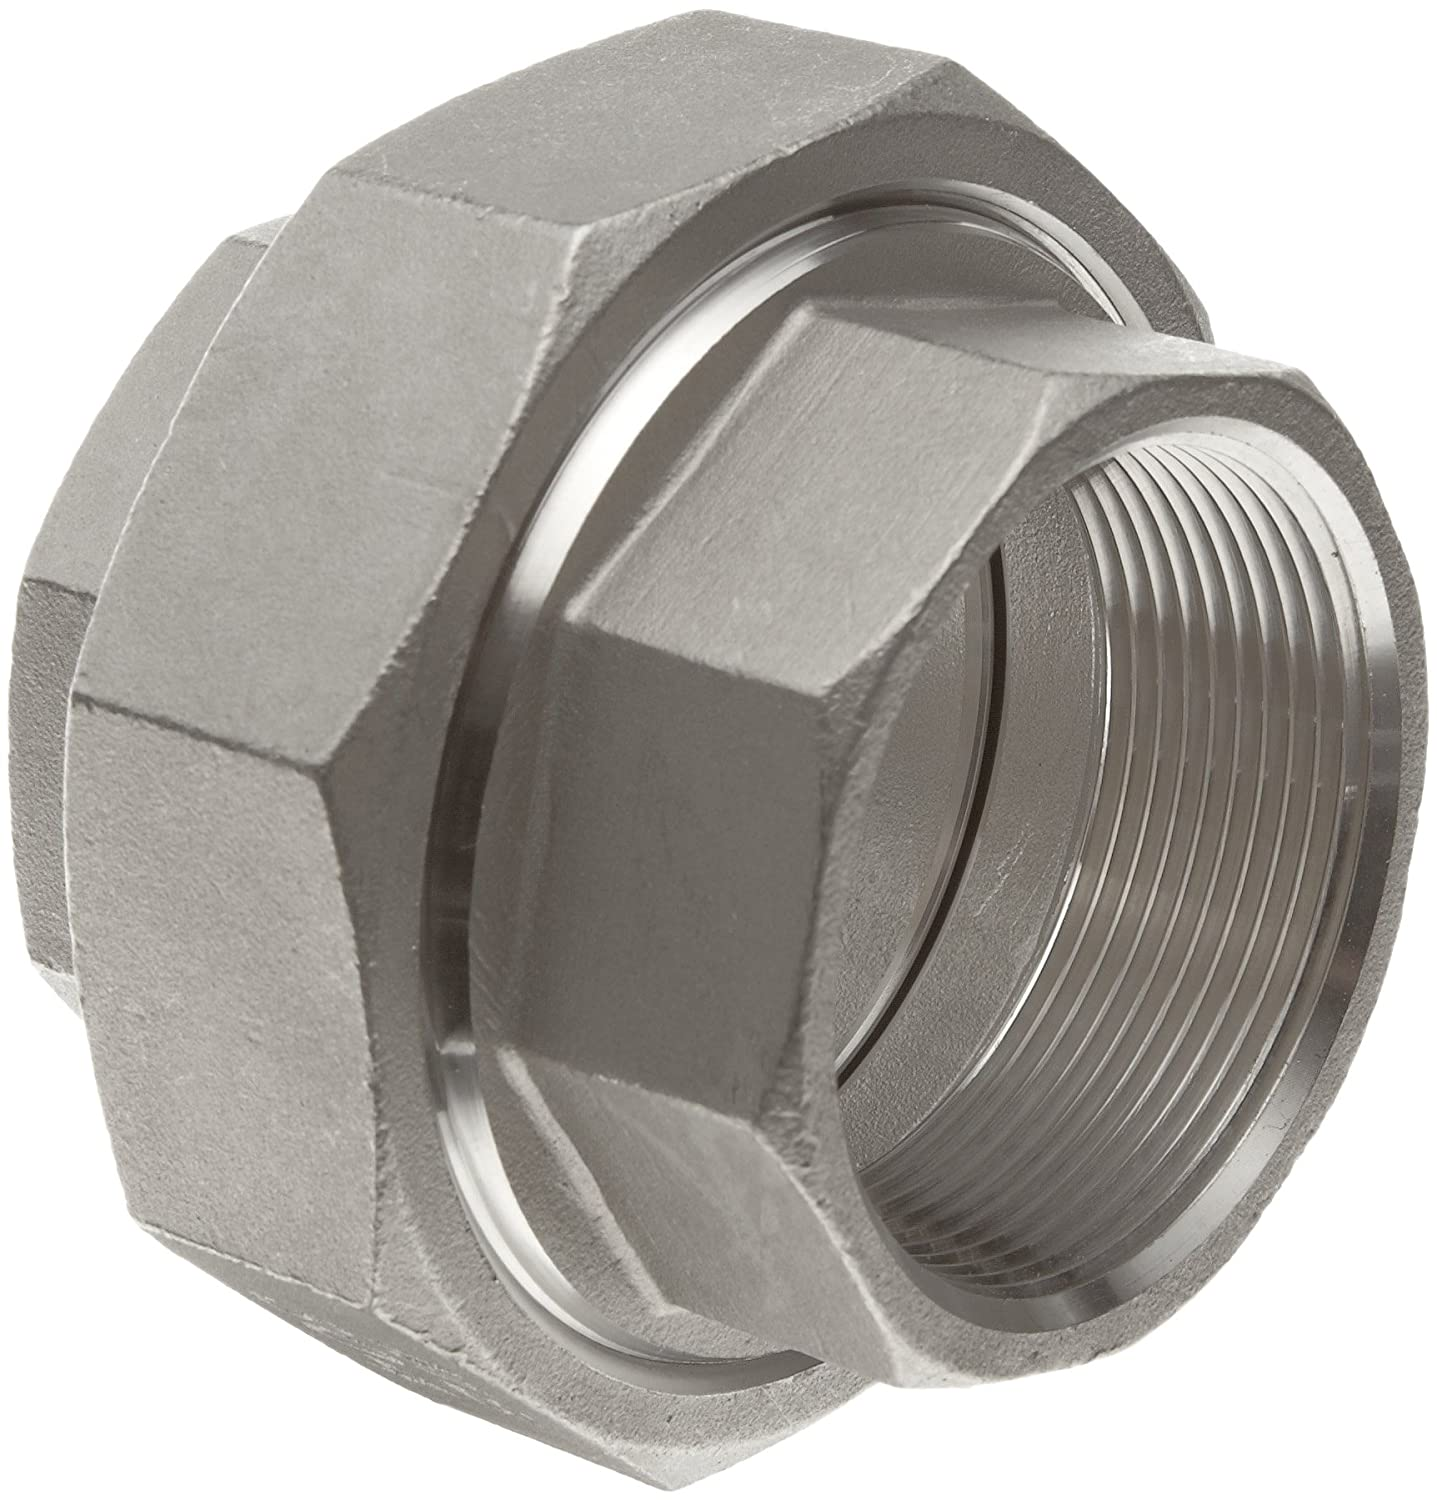 Class 150 2 NPT Female Stainless Steel 304 Cast Pipe Fitting Union